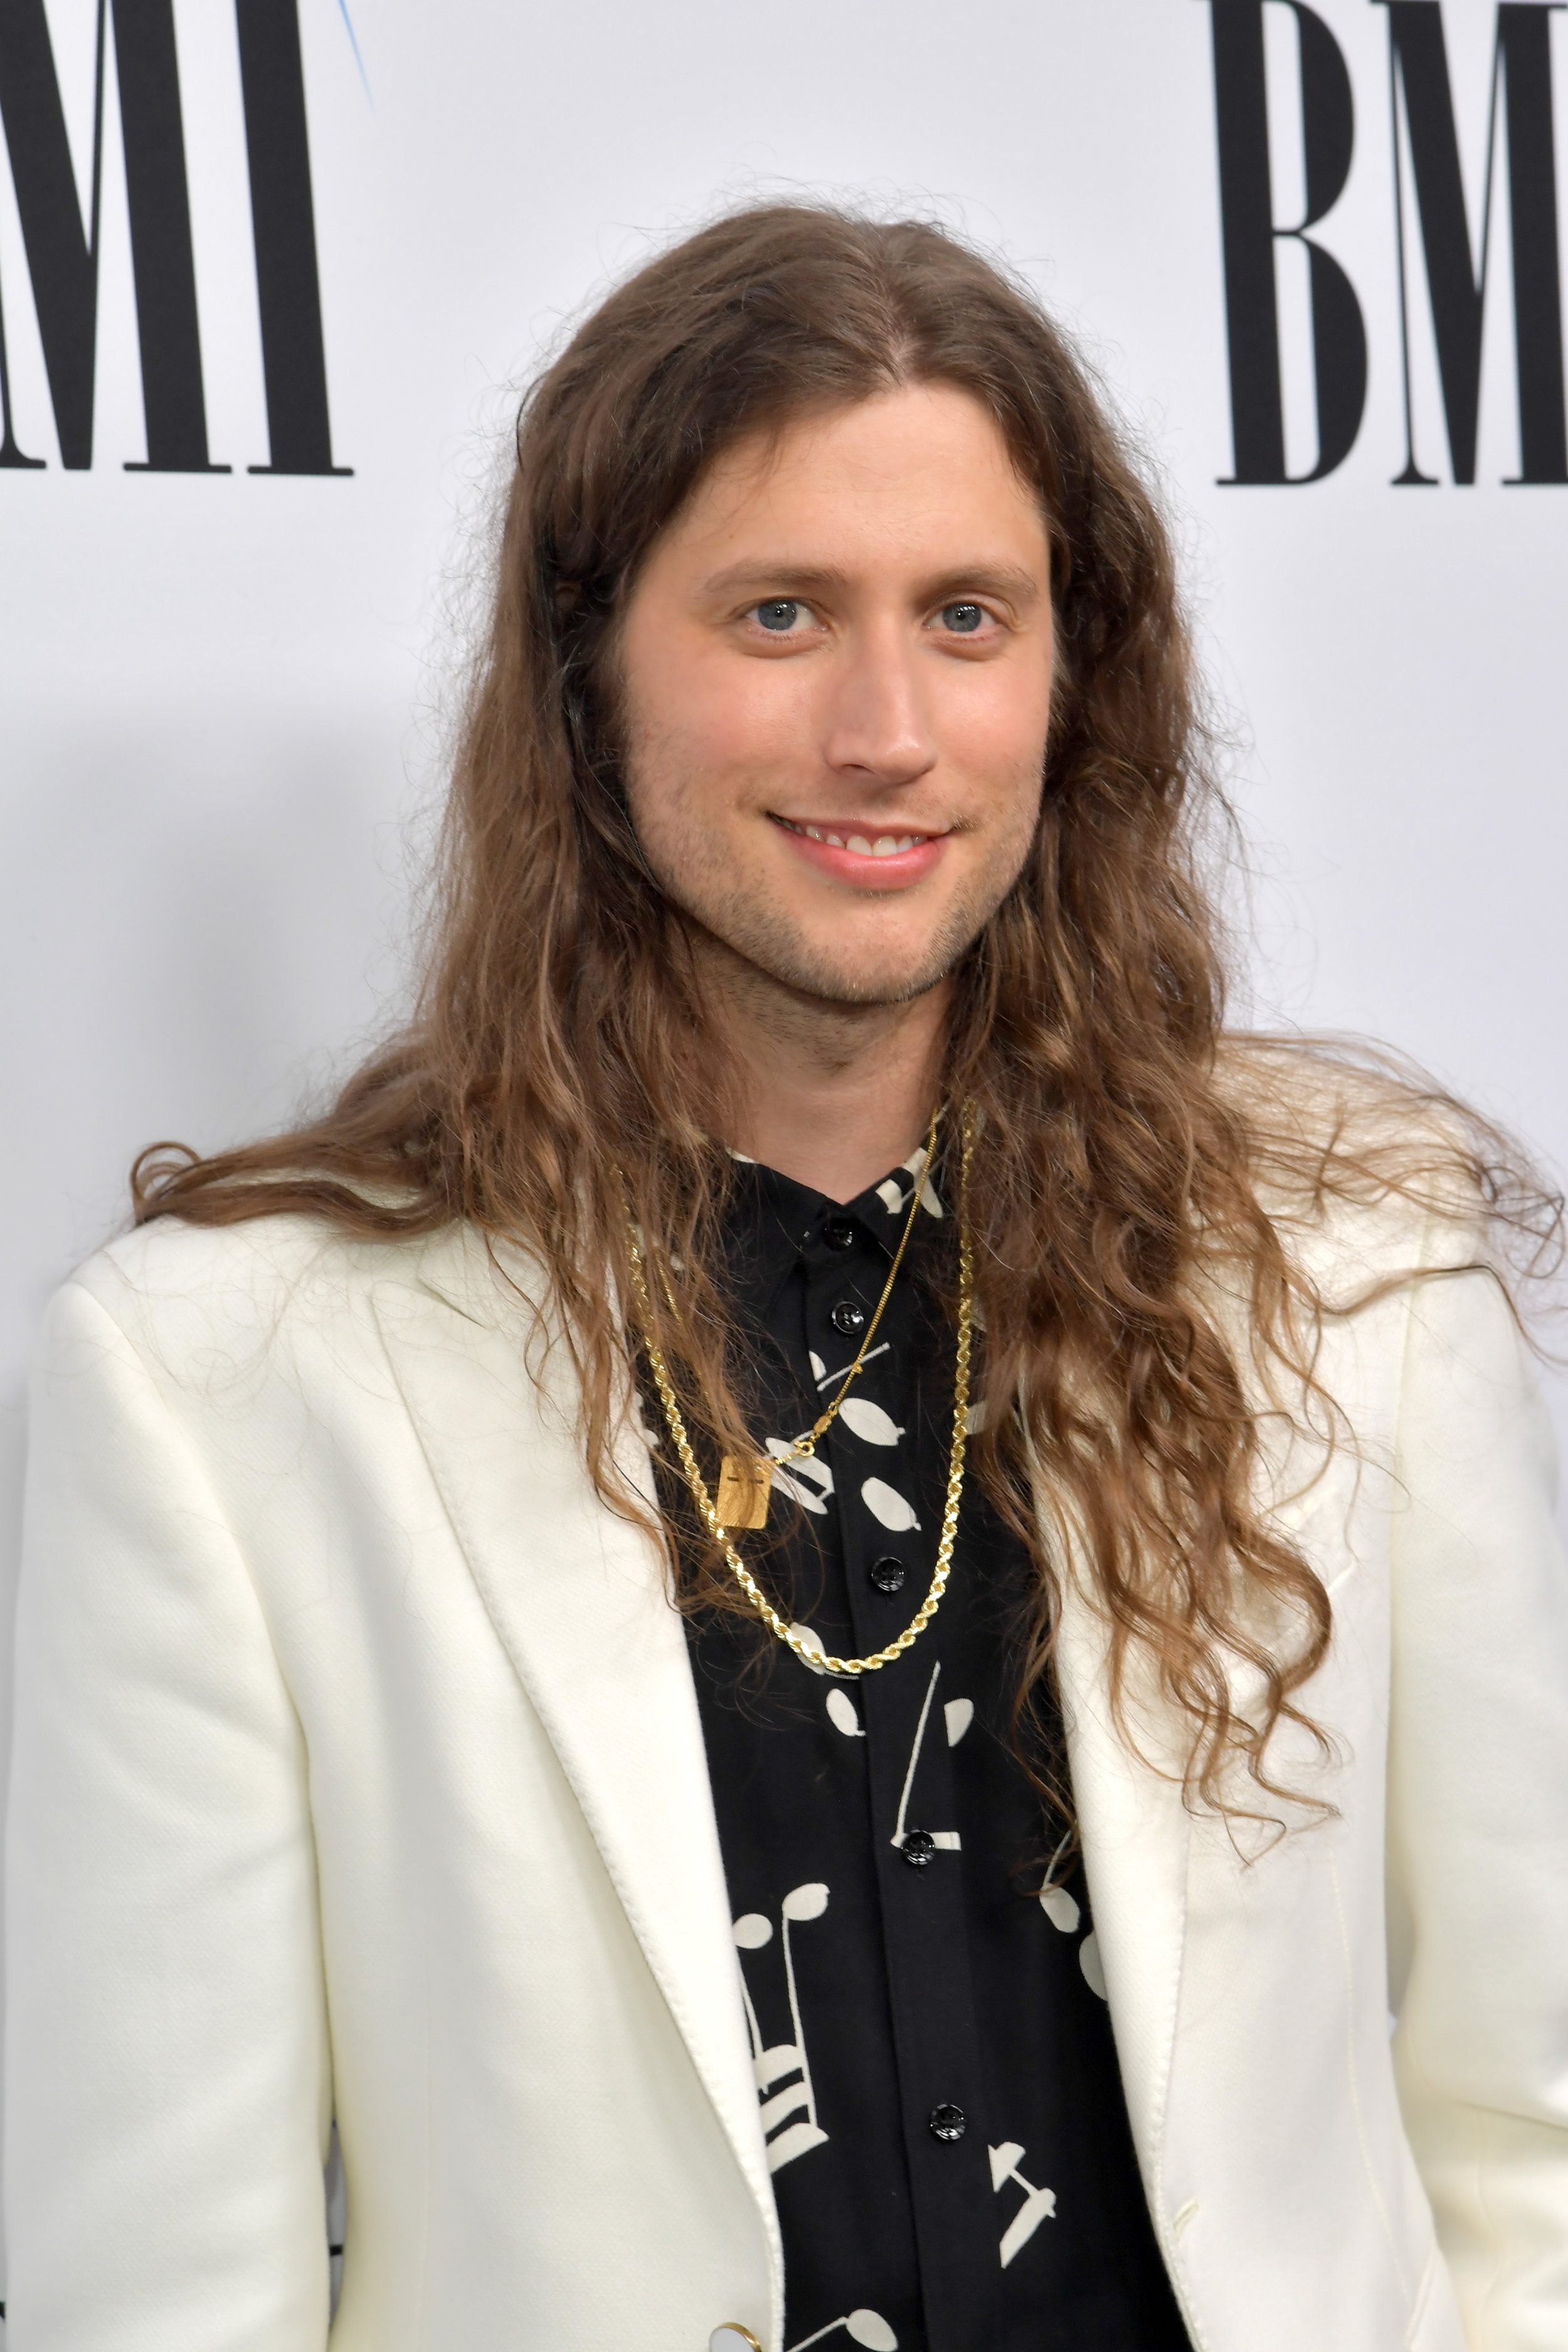 BEVERLY HILLS, CALIFORNIA - MAY 15: Ludwig Goransson attends the 35th annual BMI Film, TV & Visual Media Awards on May 15, 2019 in Beverly Hills, California. (Photo by Lester Cohen/Getty Images for BMI)